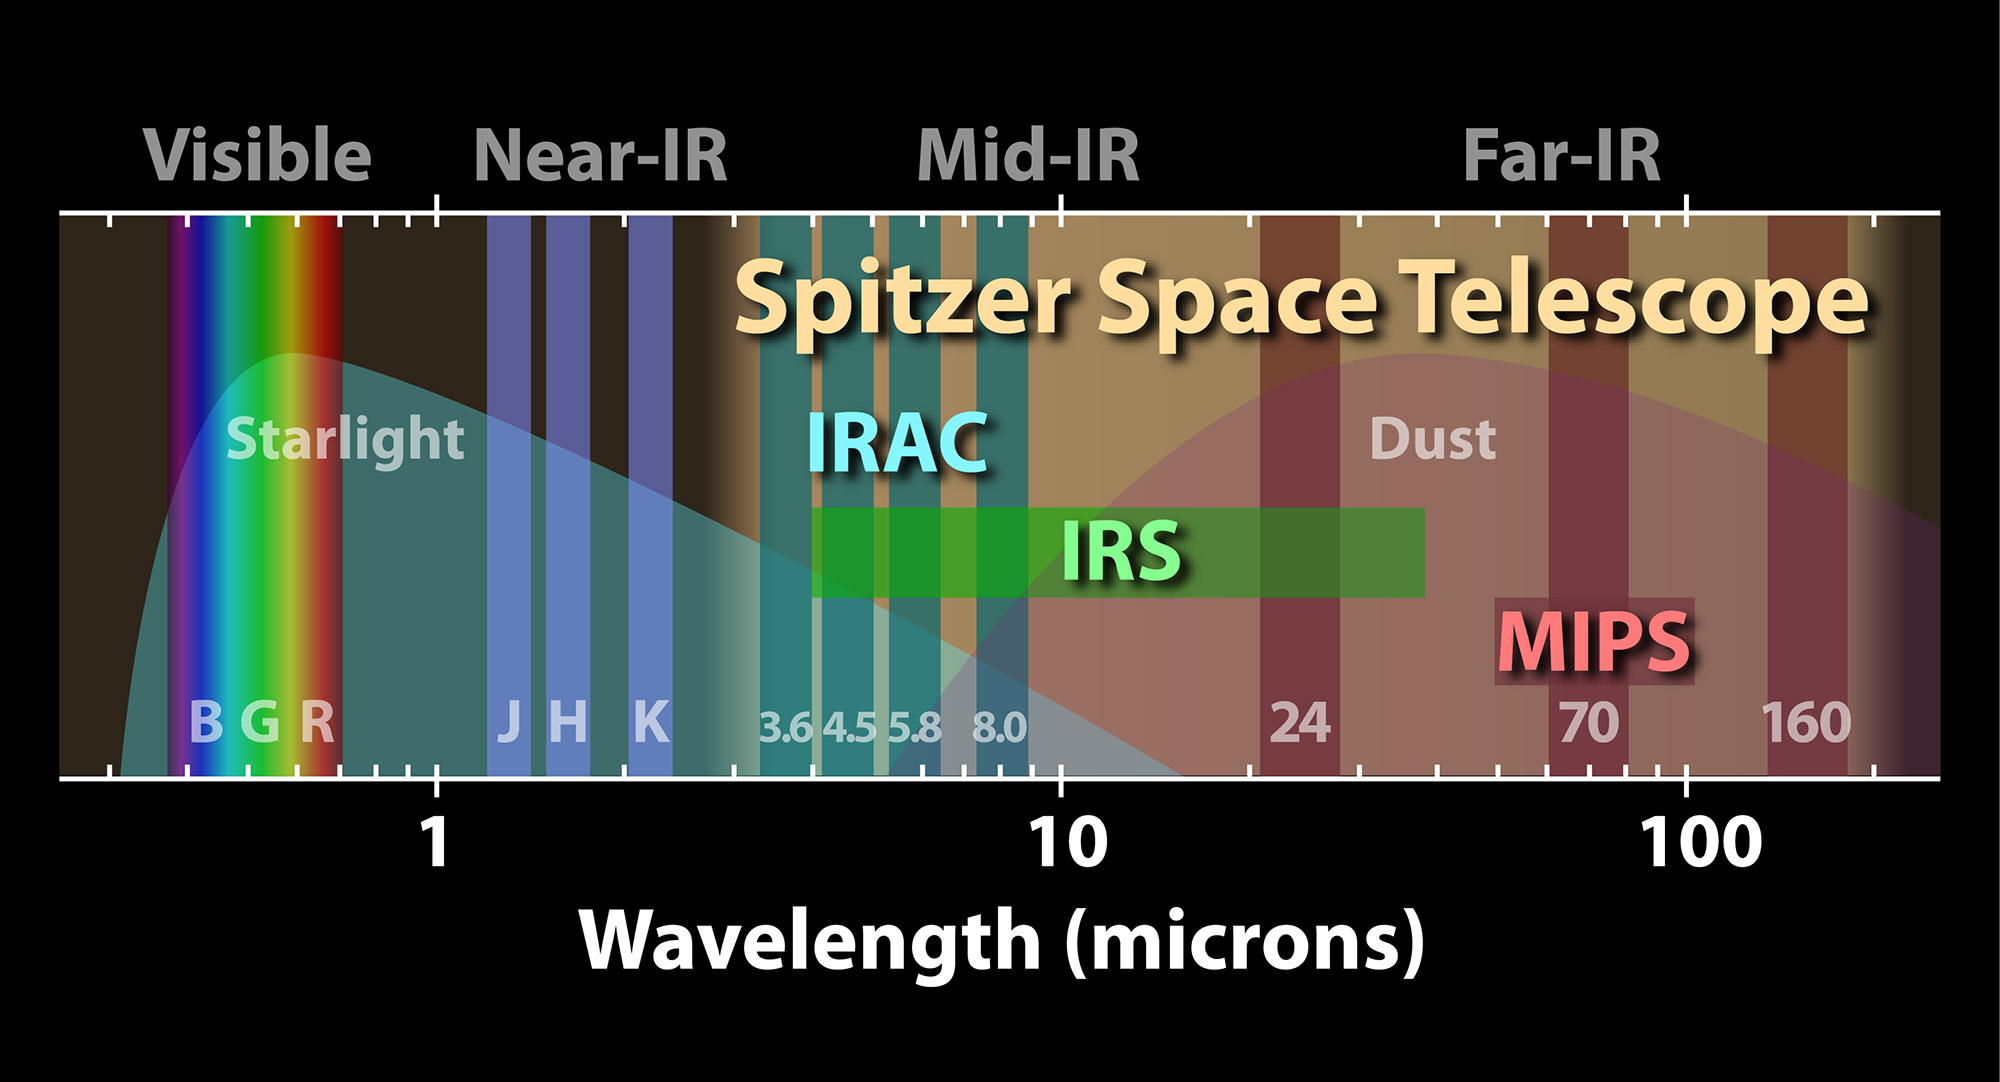 This diagram illustrates where Spitzer's vision extends in the spectrum of light, shown as a horizontal band. Vertical bars indicate different regions of the electromatic spectrum. On the left is the visible spectrum, covering the extent of human vision. On the right are the wavelengths spanned by Spitzer's detectors.